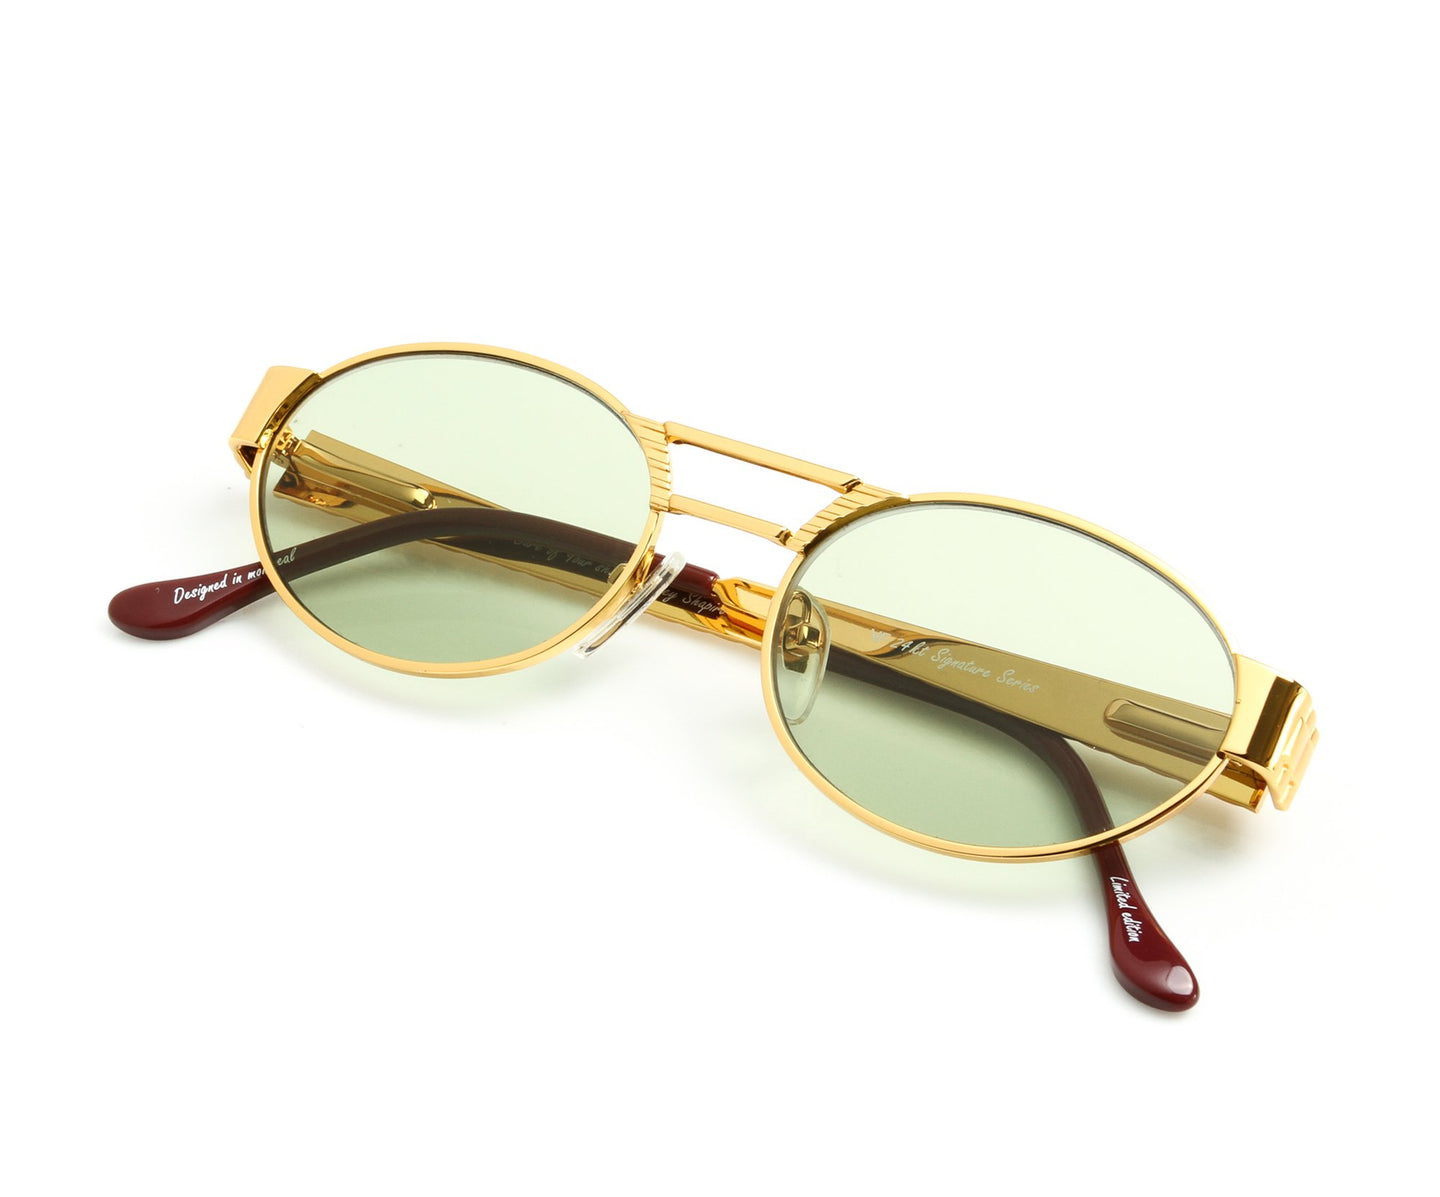 VF Pearlmaster 24KT Gold (Money Green) Thumb, VF Masterpiece , glasses frames, eyeglasses online, eyeglass frames, mens glasses, womens glasses, buy glasses online, designer eyeglasses, vintage sunglasses, retro sunglasses, vintage glasses, sunglass, eyeglass, glasses, lens, vintage frames company, vf